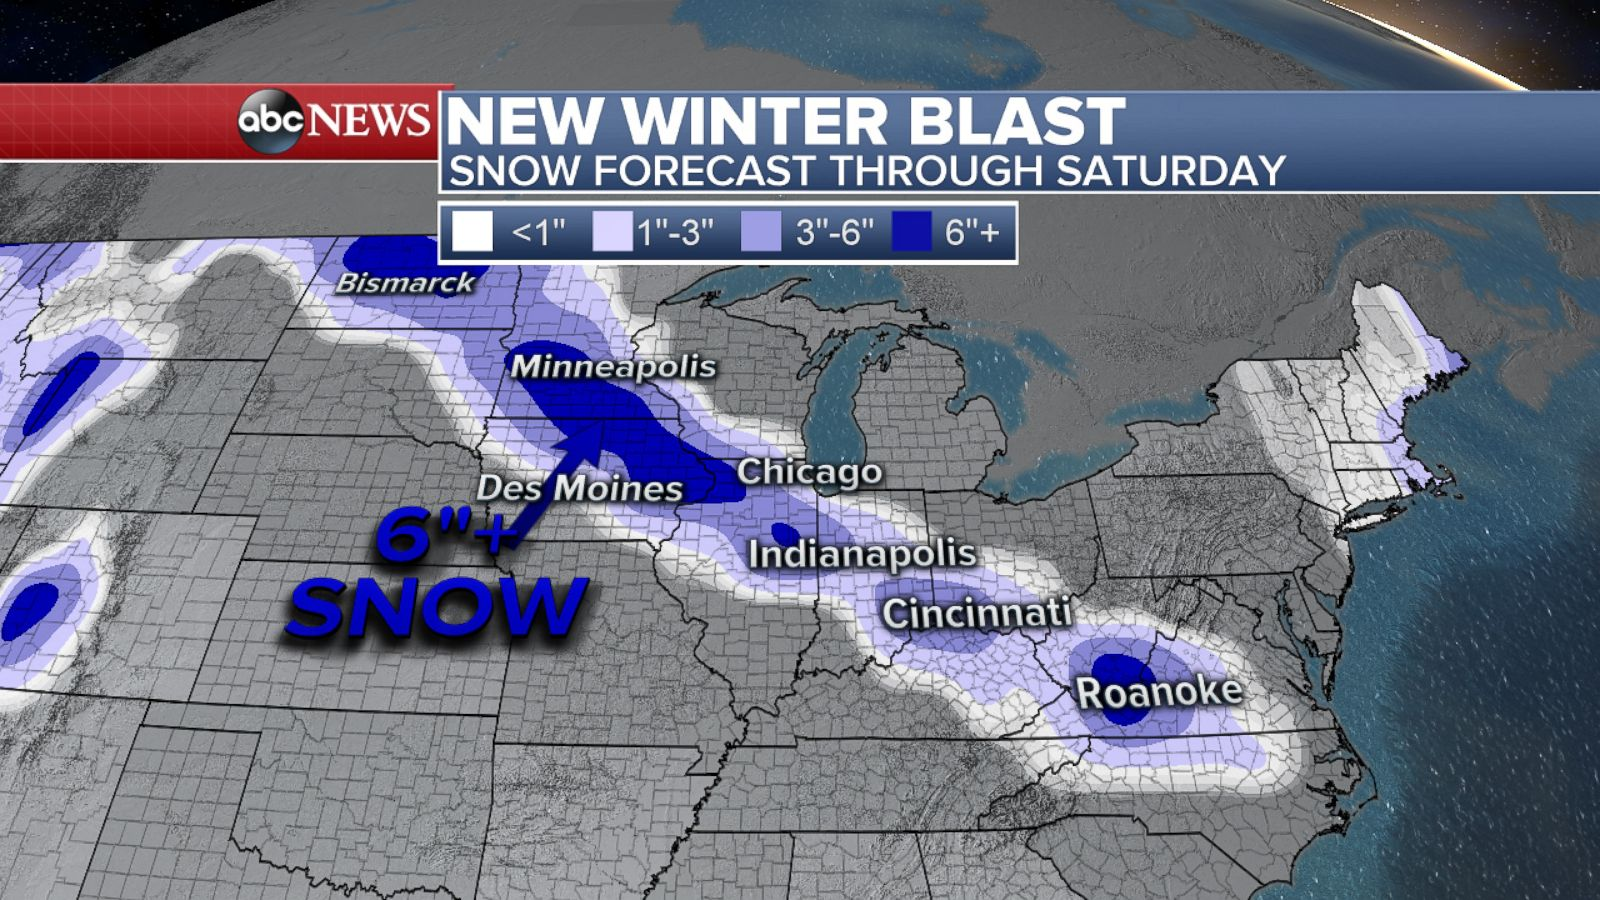 PHOTO: An ABC News weather map shows a snow forecast across a swathe ...